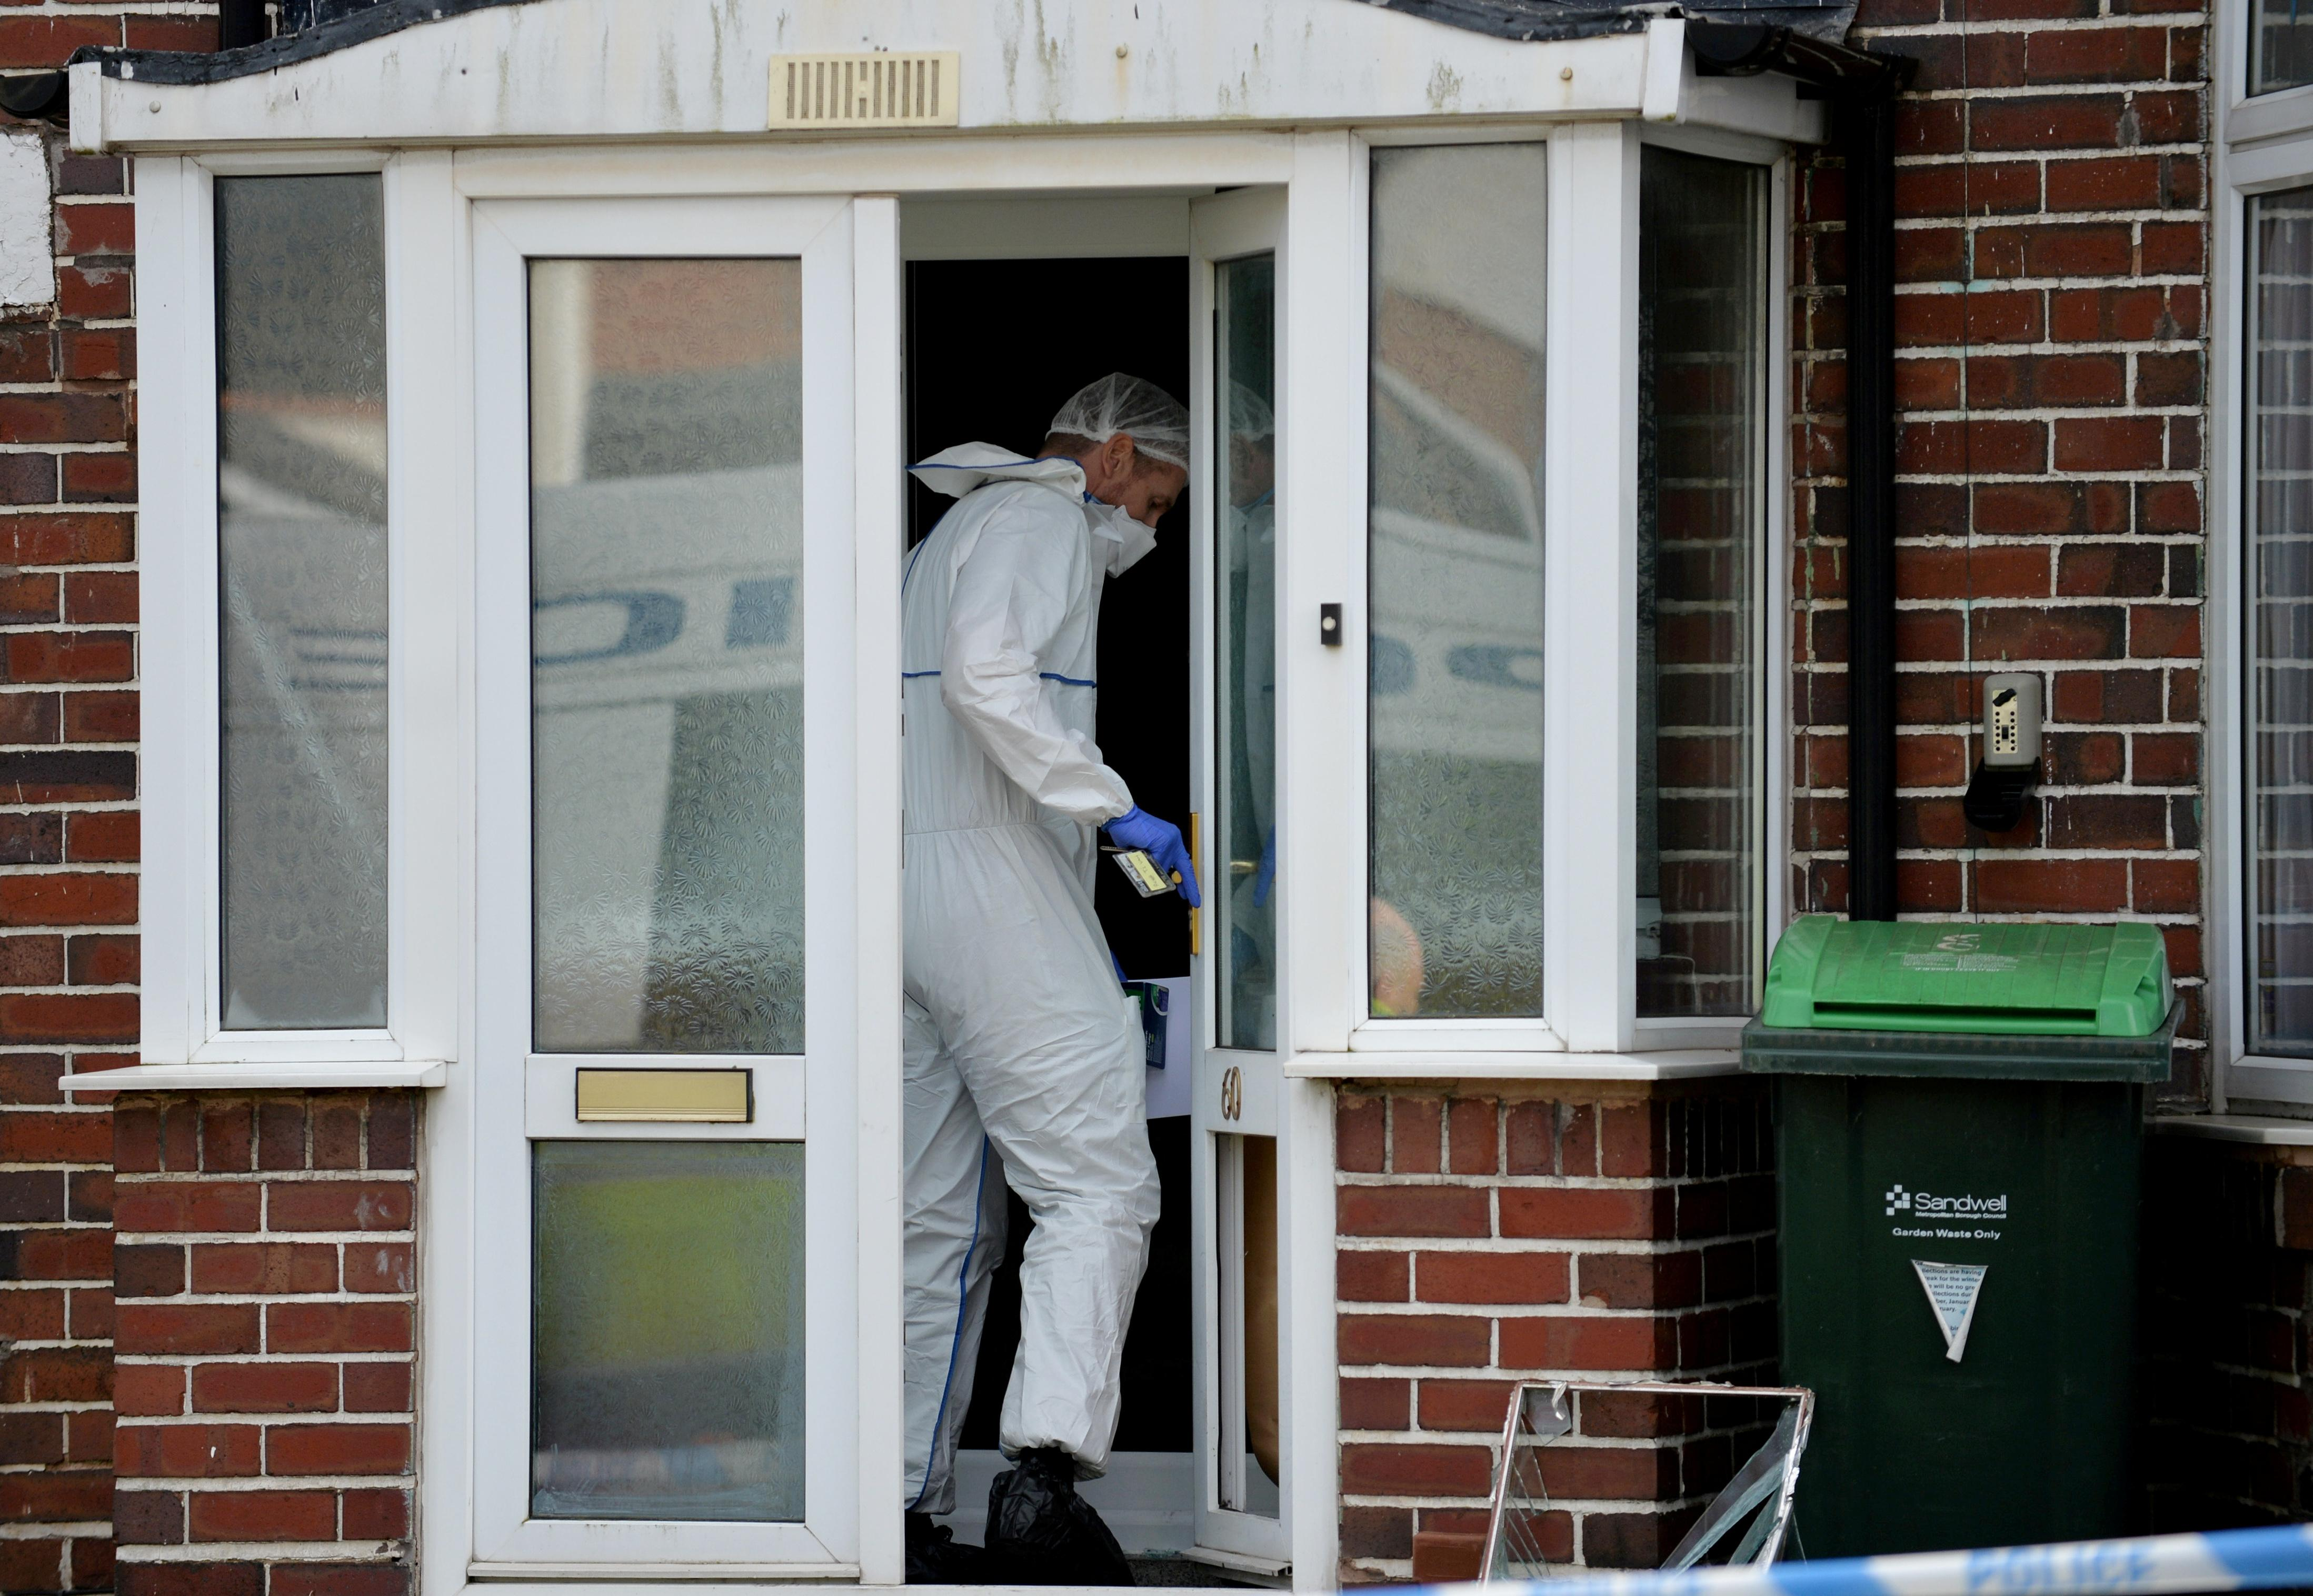 "Police forensics at the scene in Moat Road in Oldbury, West Mids, where the bodies of a middle-aged couple were found in their home this morning. February 25, 2020. See SWNS story SWMDmurders. A 25-year-old man was arrested on suspicion of double murder today (Tues) after the bodies of a middle-aged couple were found in their home. Police officers forced their way into a house in Moat Road in Oldbury, West Mids., at 4am after receiving calls regarding the welfare of the couple. Inside the property officers found the bodies of a woman, 54, and a 52-year-old man who were pronounced dead at the scene. At 5.30am detectives arrested a 25-year-old man at an address in nearby Smethwick. Police are not confirming if the man was the victims' parents but say they are treating the murders as a ""domestic-related incident"". A West Midlands Police spokesperson said: ""We've arrested a man on suspicion of murder after the bodies of two people were found in Oldbury today."